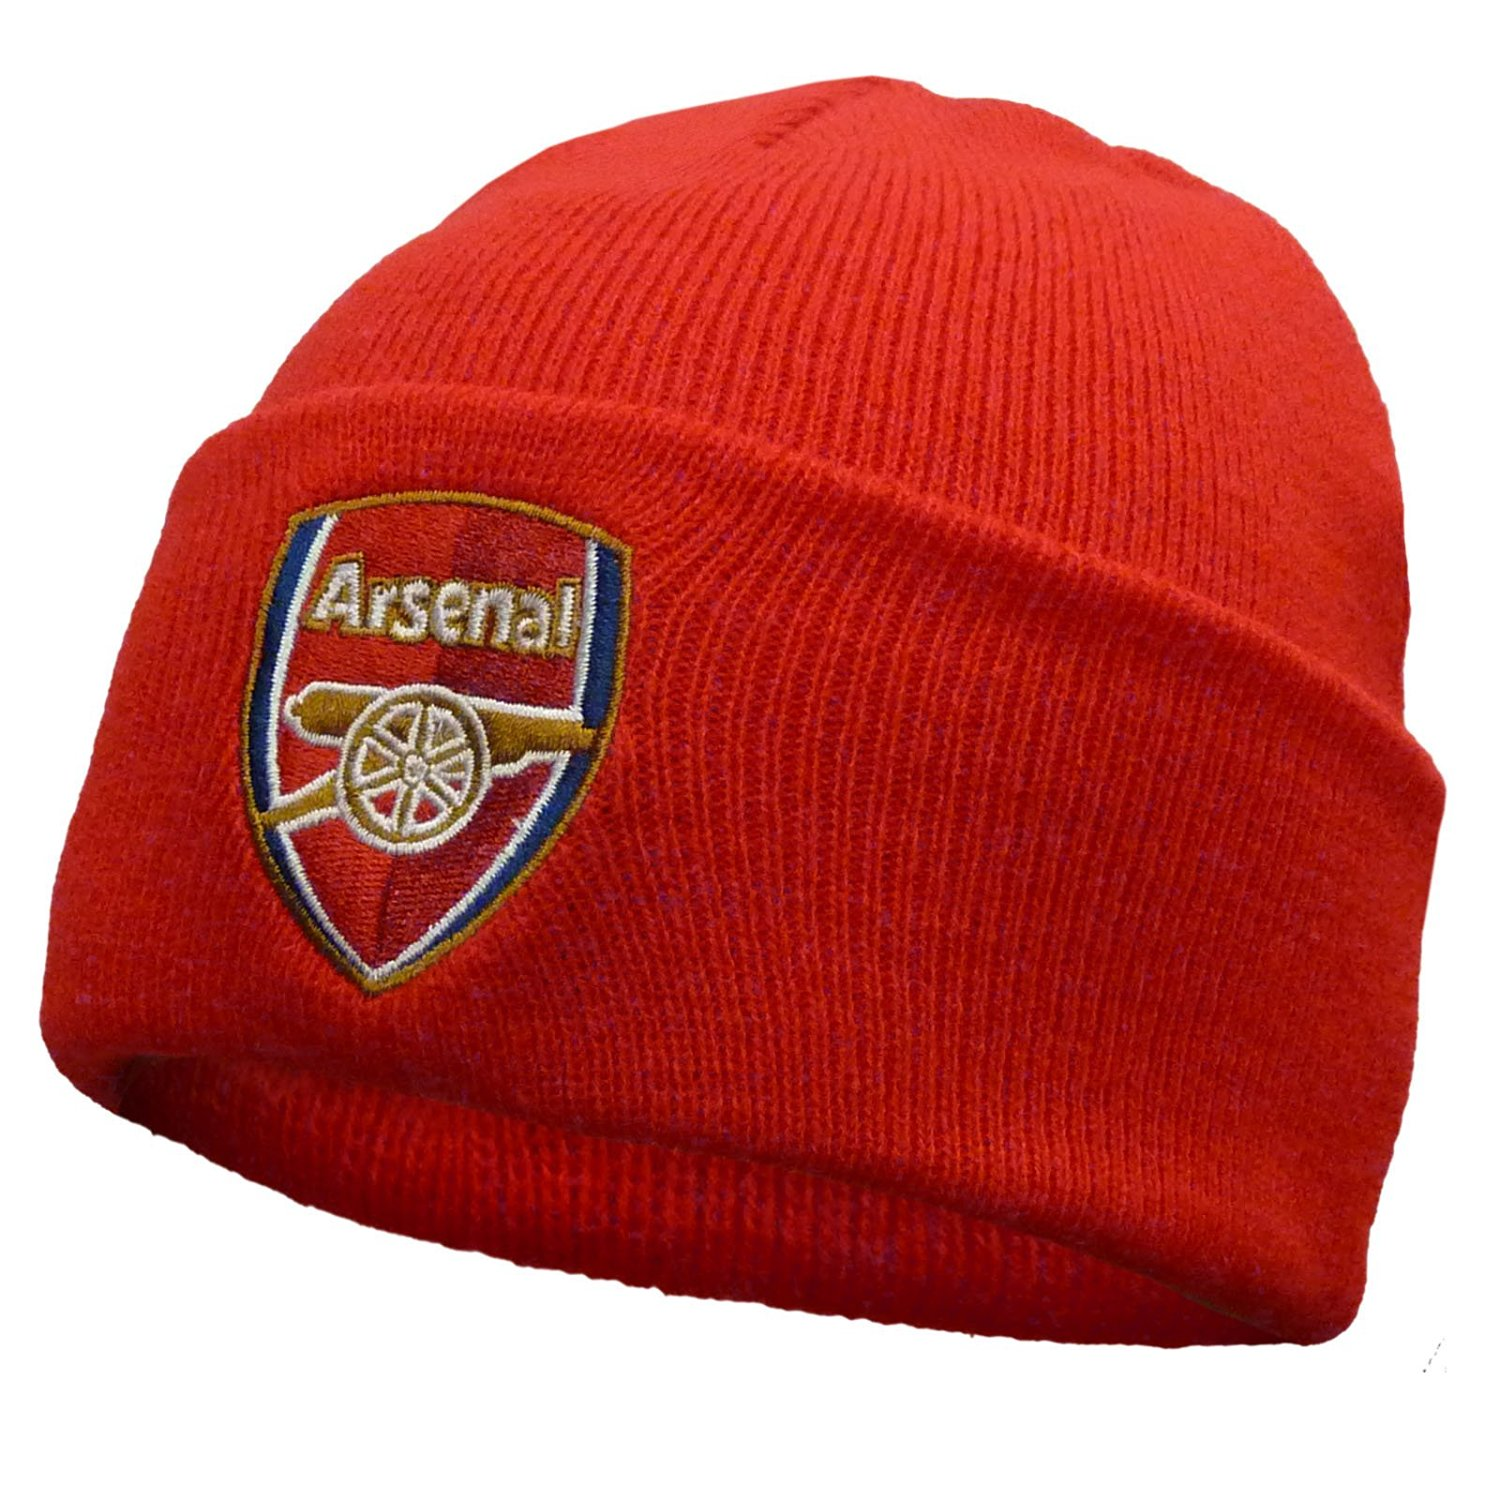 ee6d21659fd Get Quotations · Arsenal Football Club Official Soccer Gift Knitted Bronx  Beanie Hat